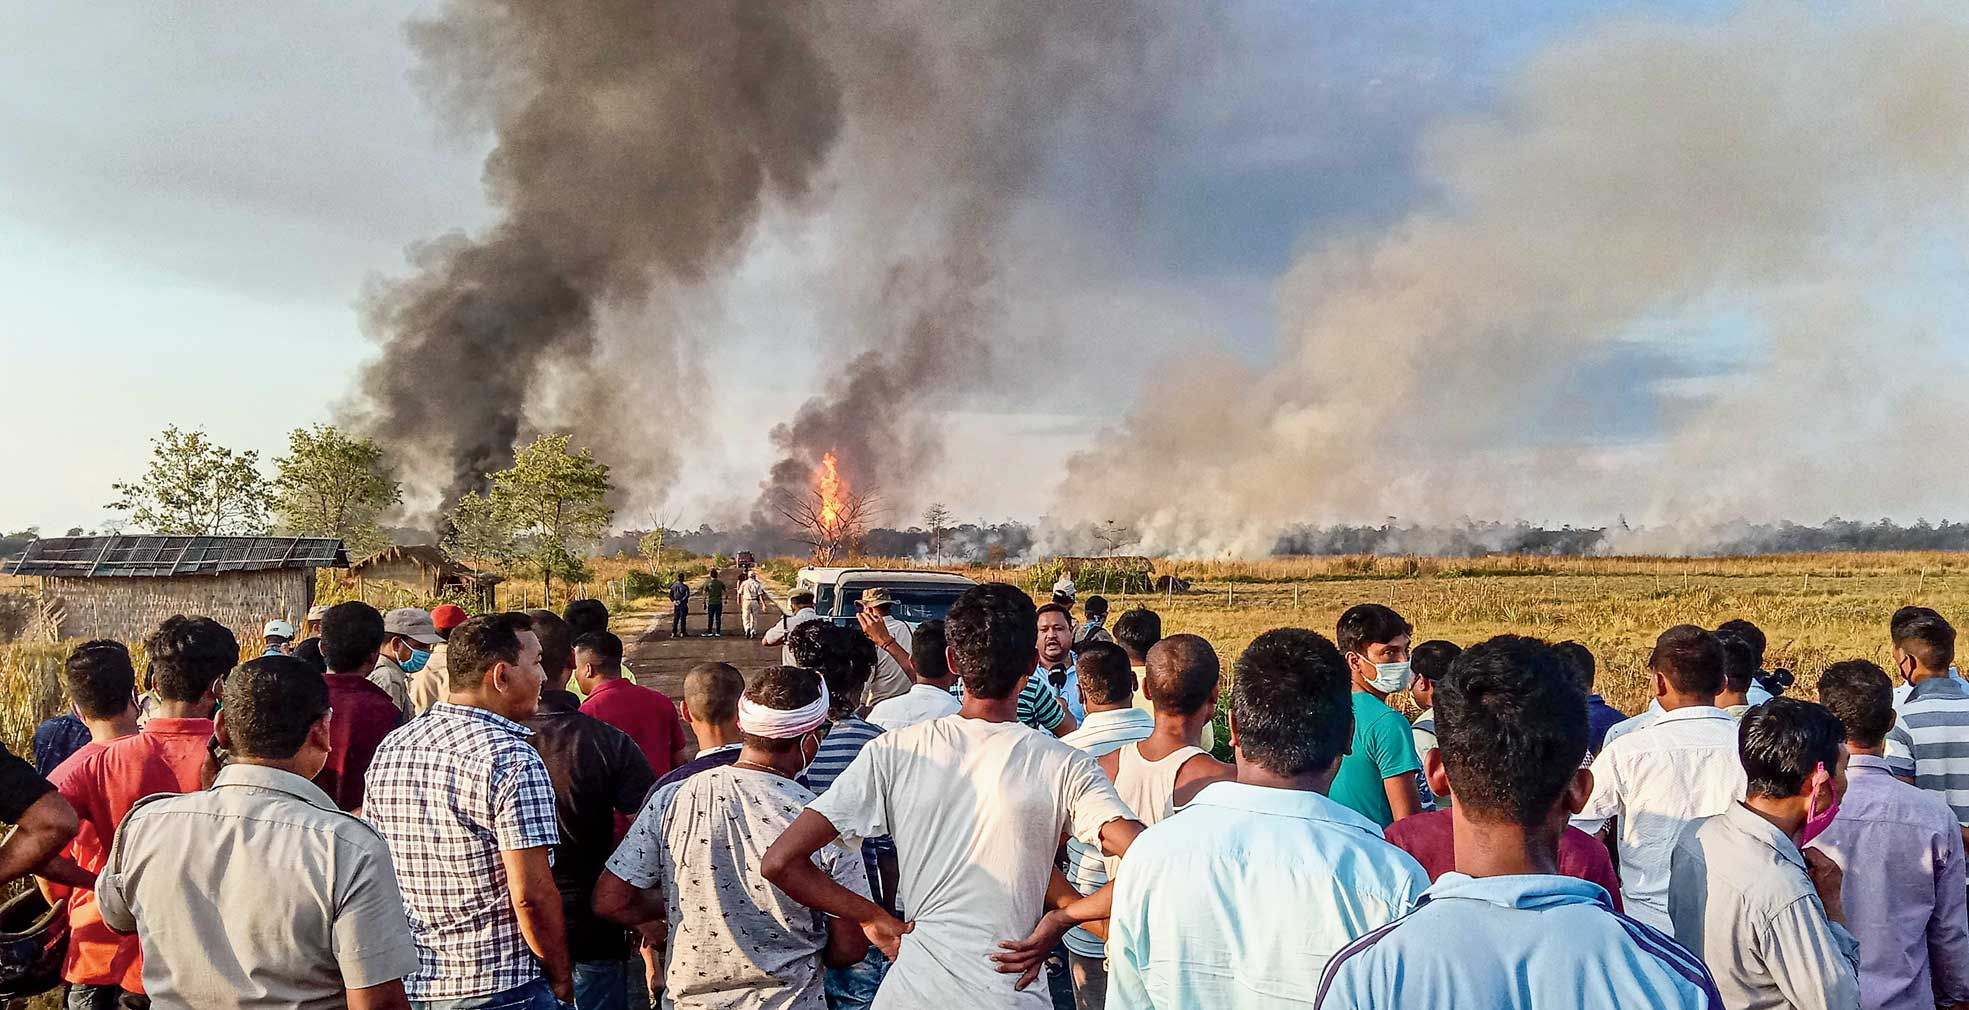 Residents look on as smoke rises from the fire at Baghjan oil field.